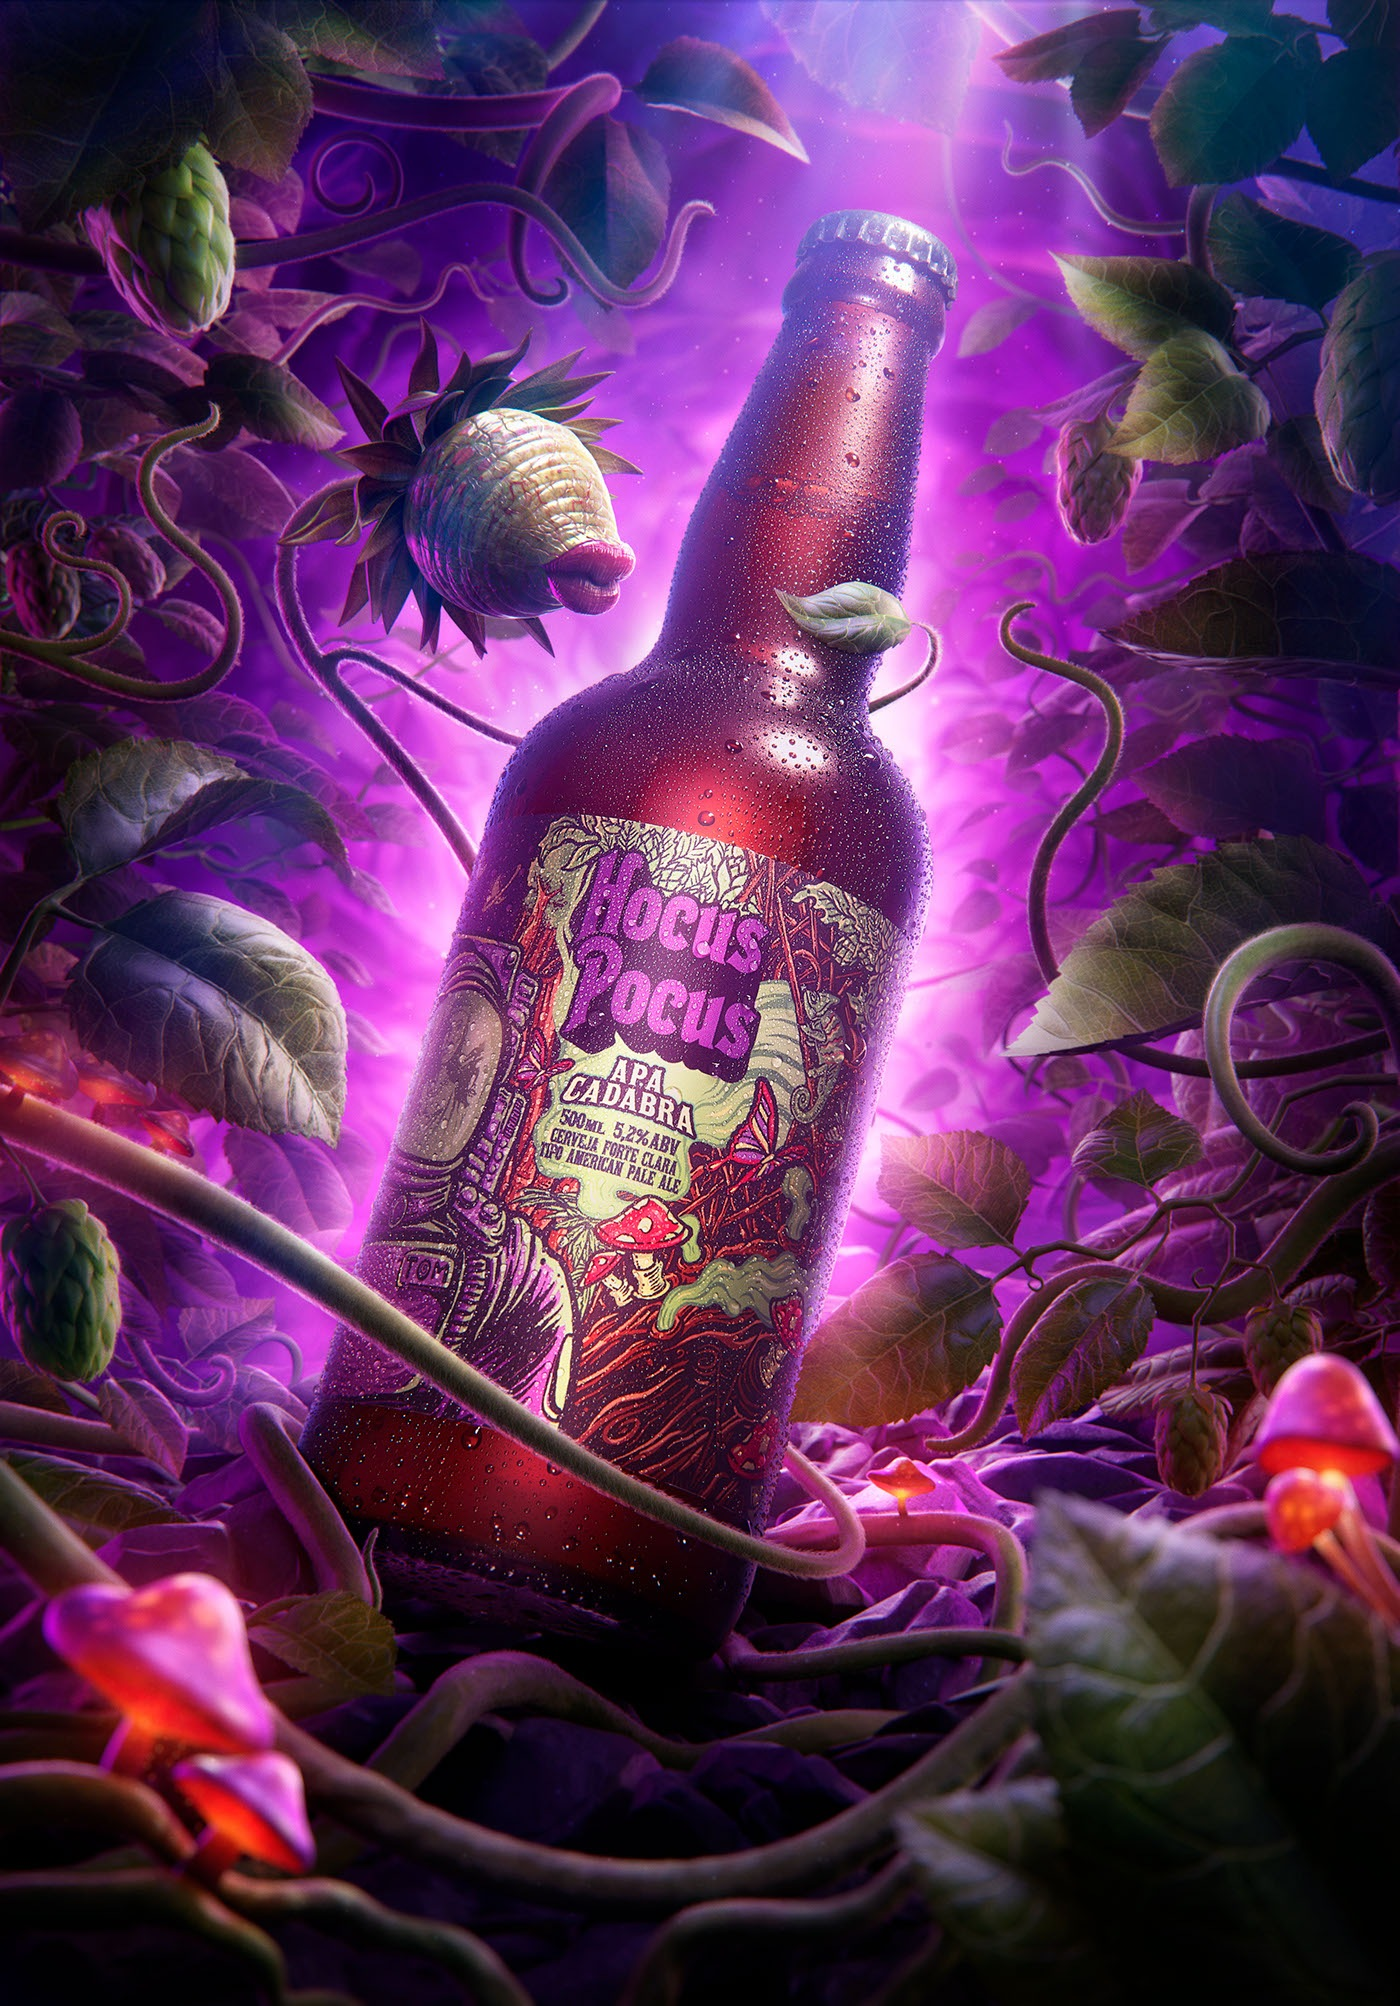 Beer Bottle Labels - Hocus Pocus